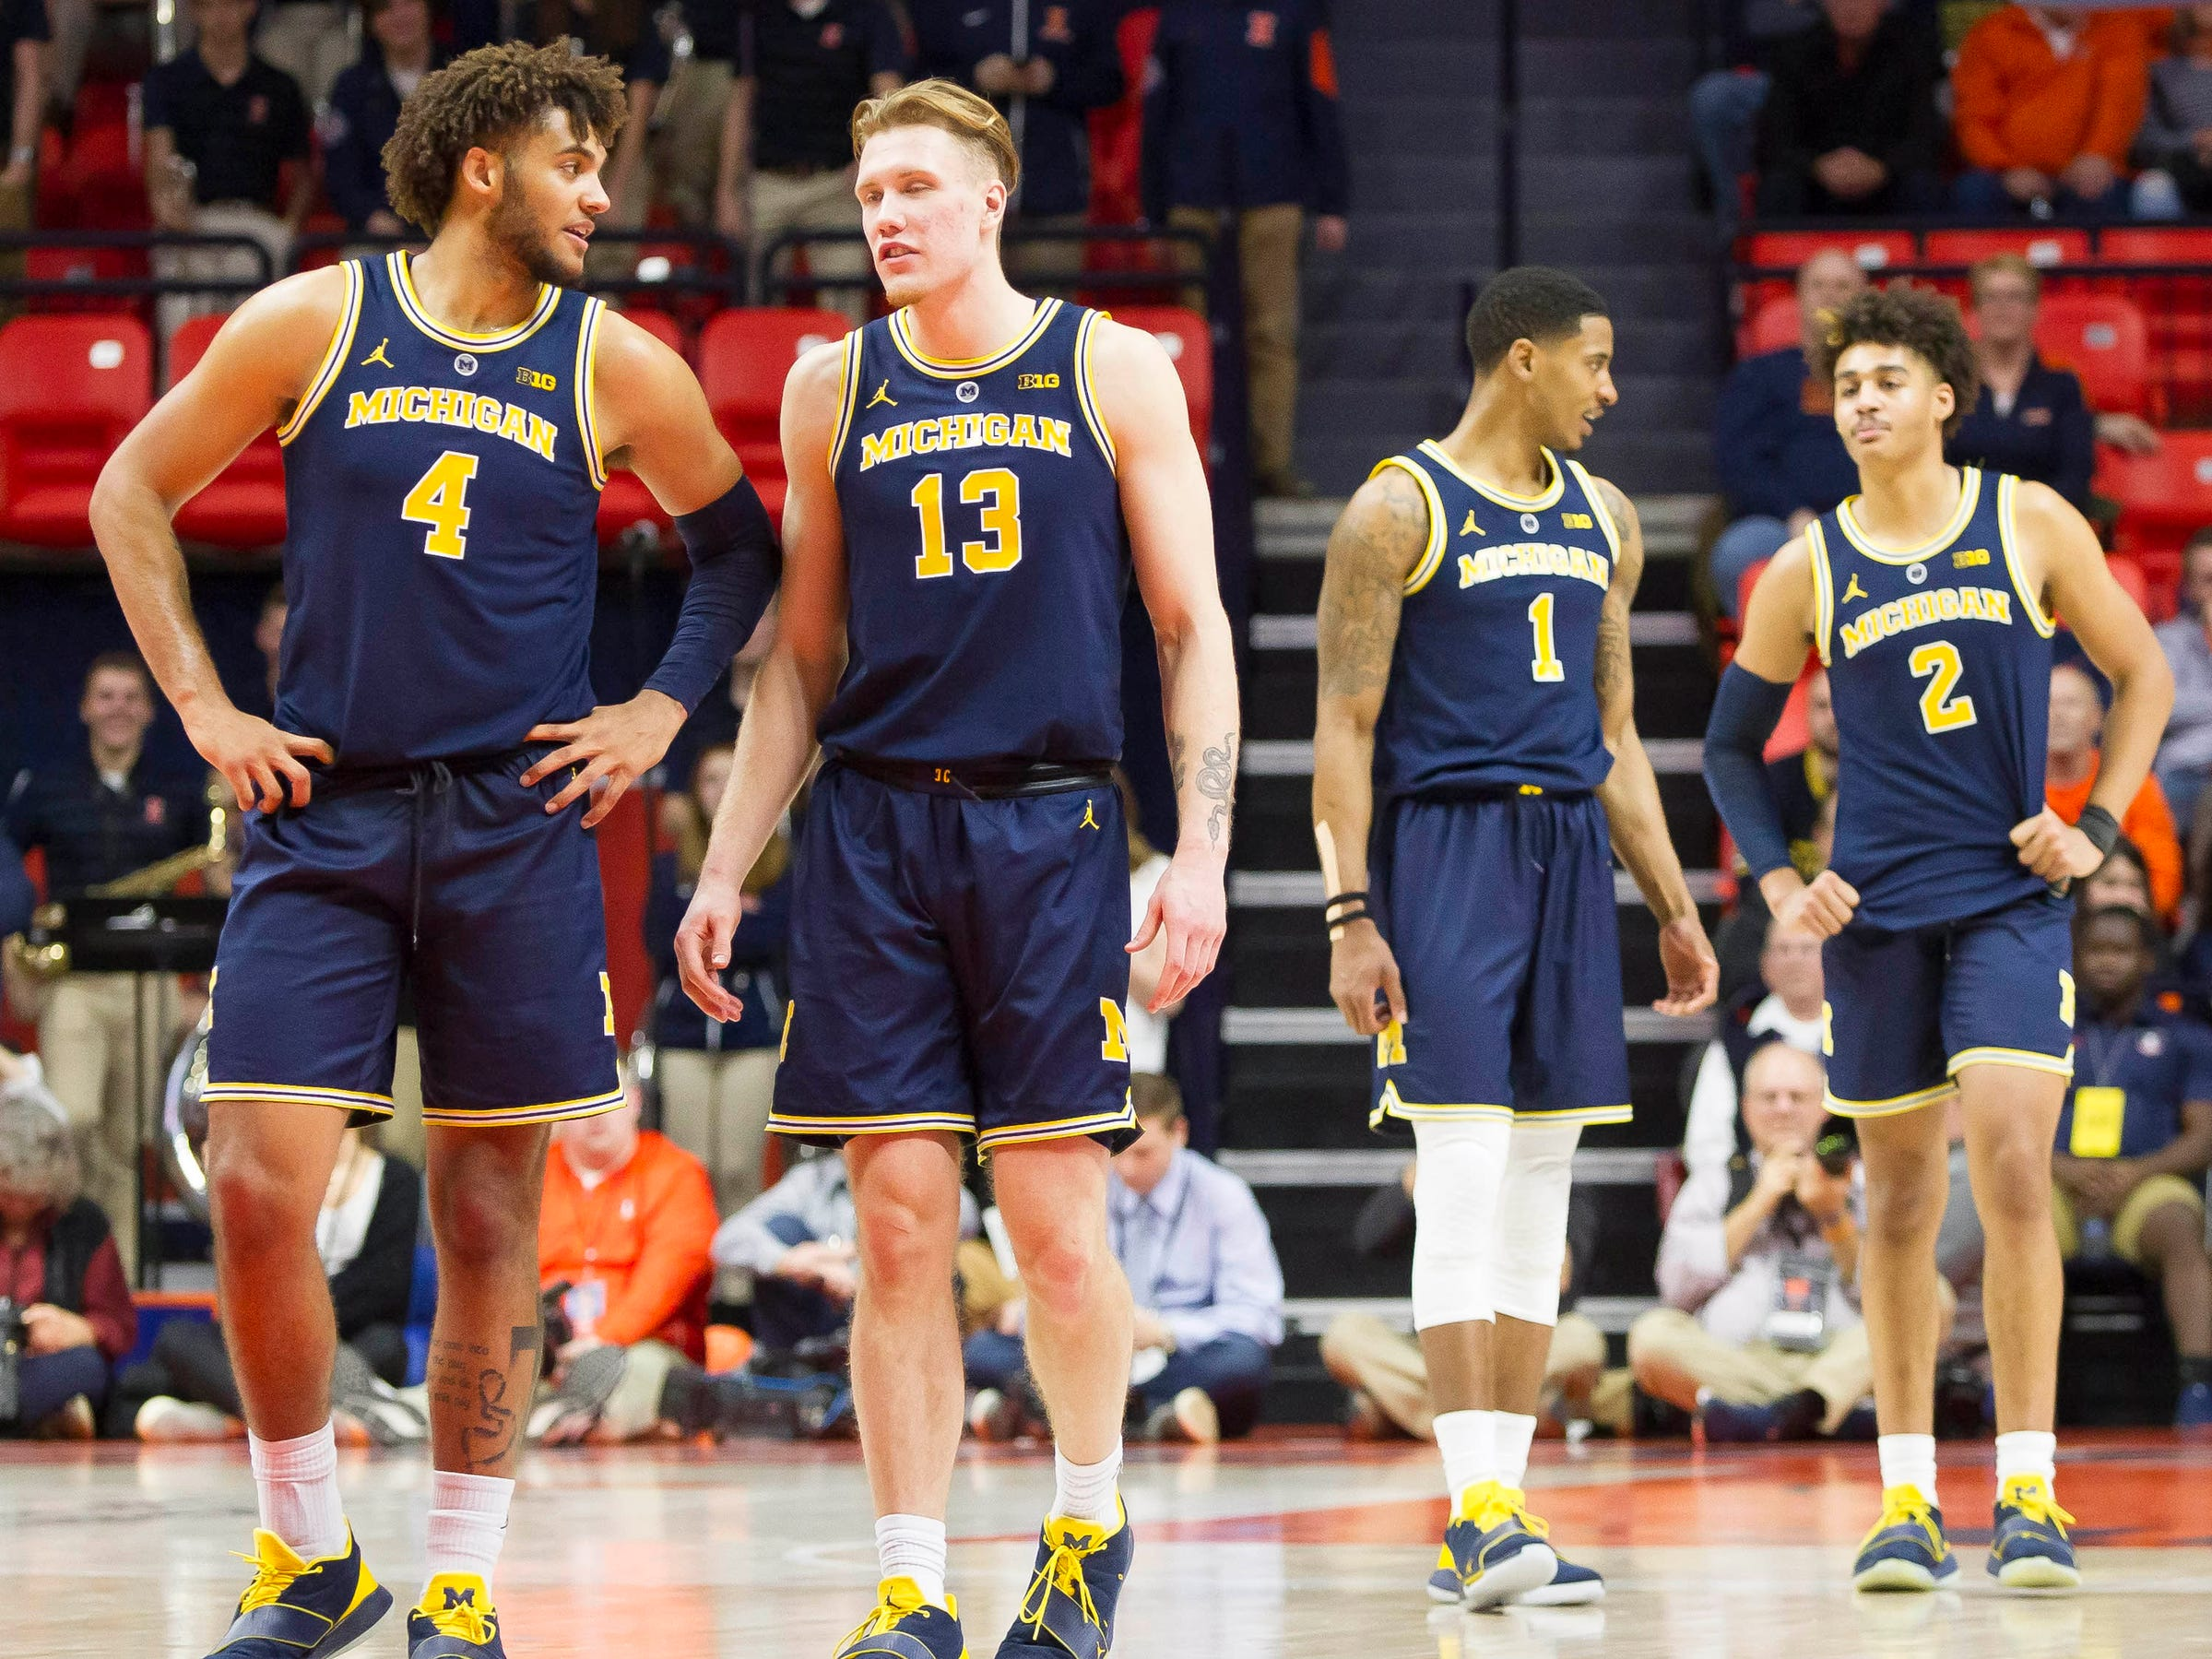 (From left) Michigan forwards Isaiah Livers and Ignas Brazdeikis and guards Charles Matthews and Jordan Poole take the court following a timeout  during the second half of U-M's 79-69 win on Thursday, Jan. 10, 2019, in Champaign, Ill.